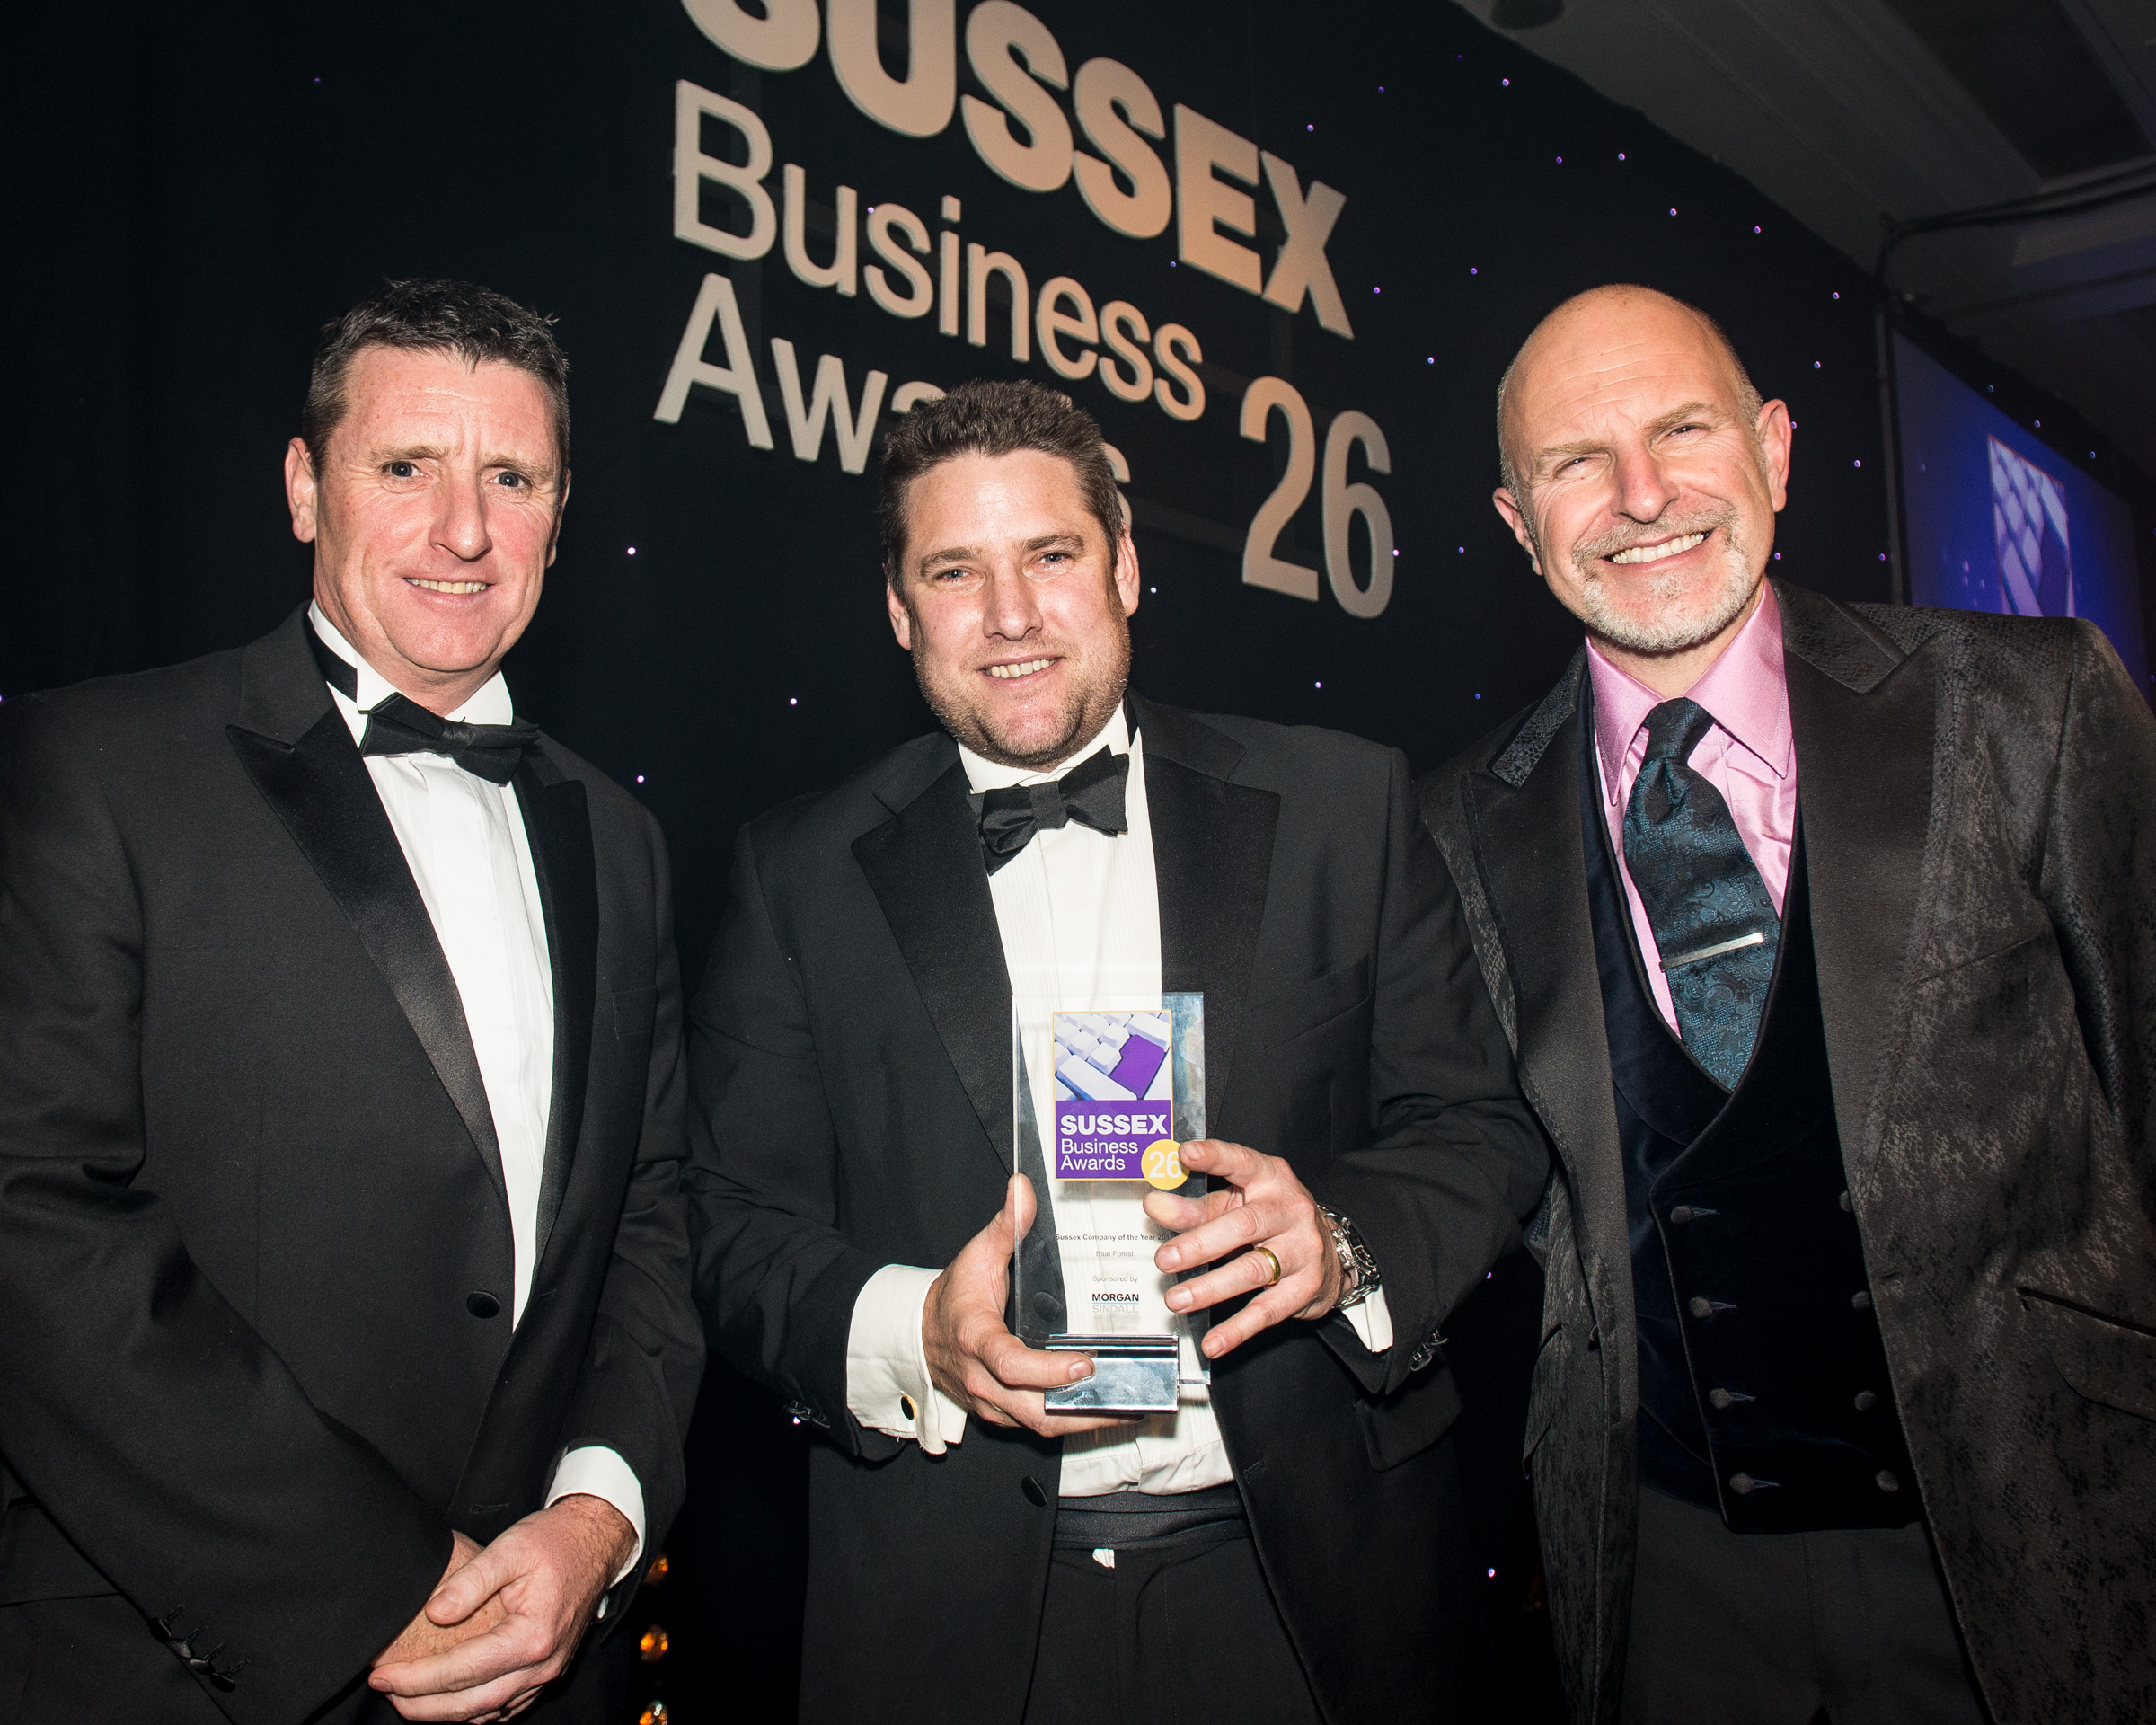 Wednesday 10th December 2014 Sussex Business Awards 2014, The Grand, Brighton, East Sussex, UK